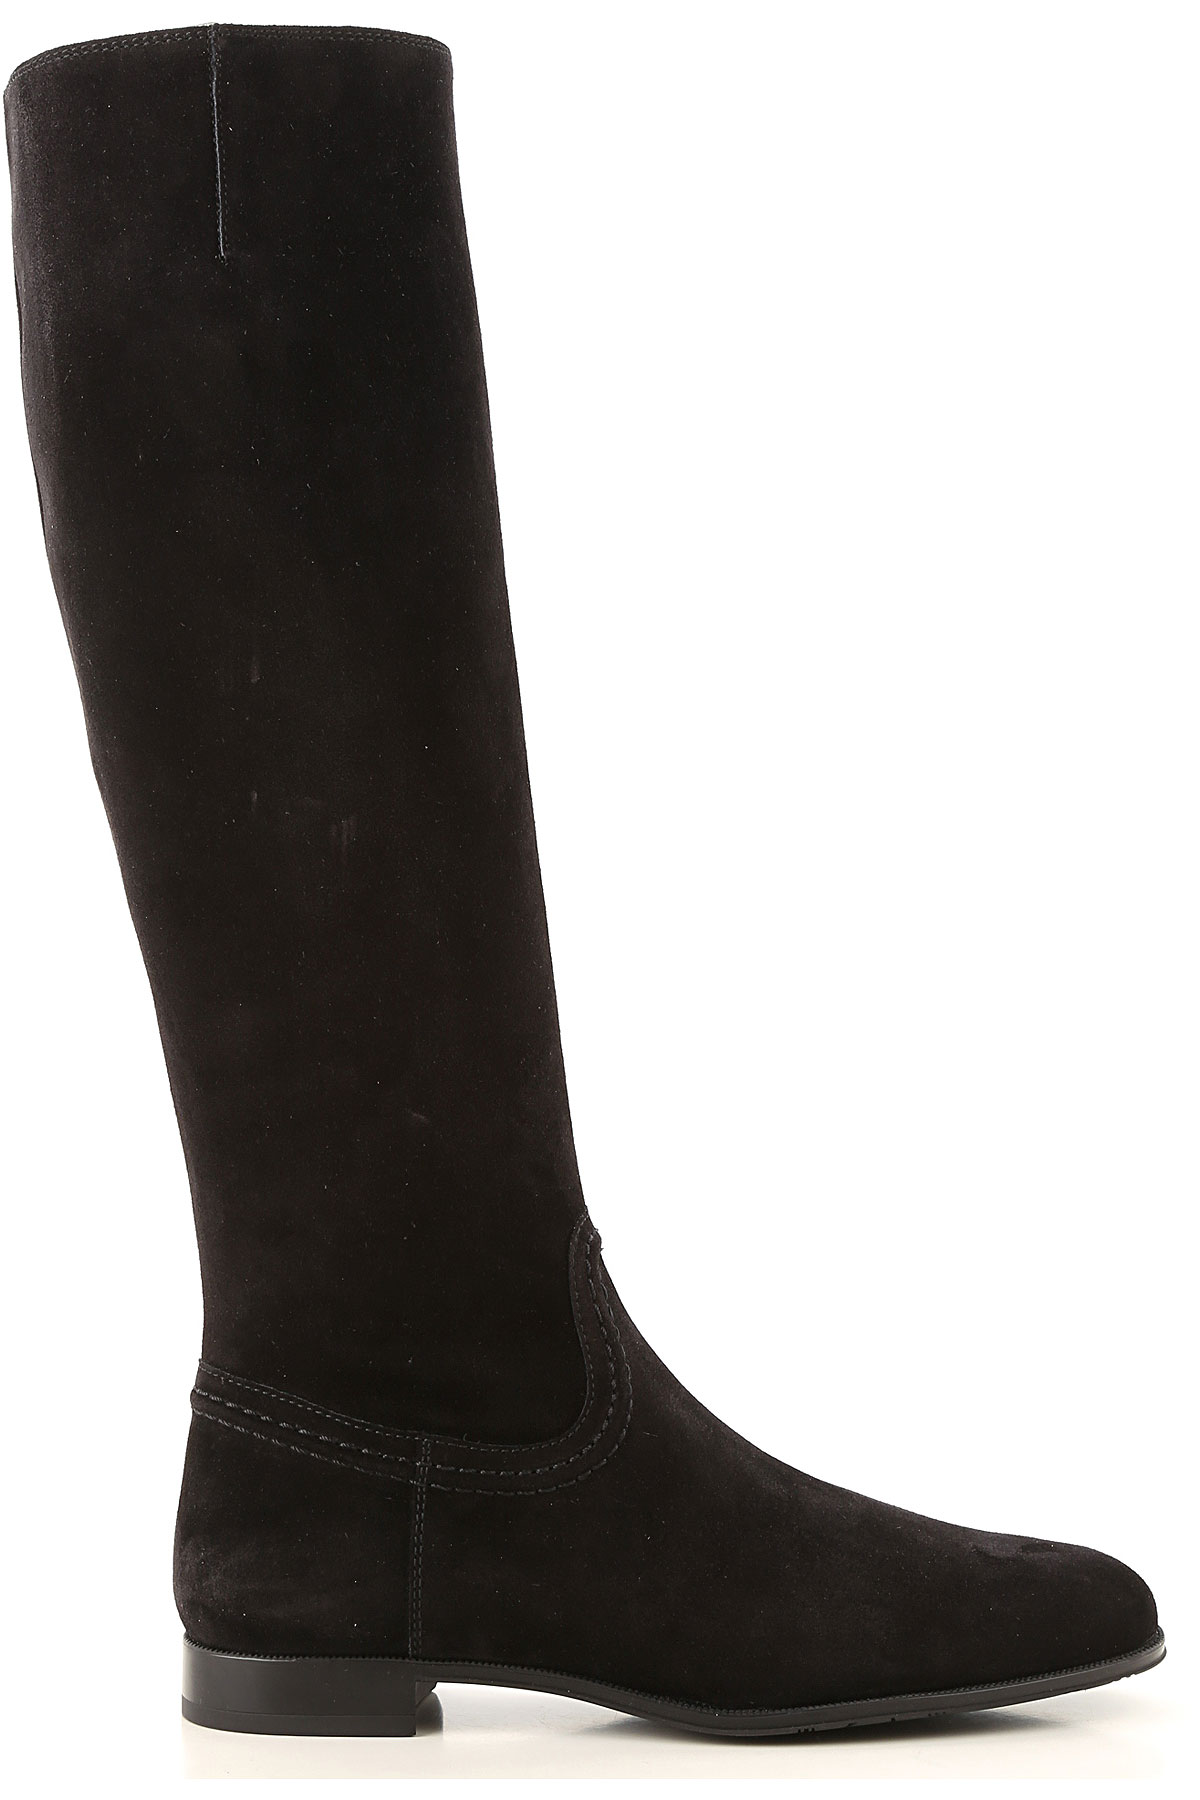 Tods Boots for Women, Booties On Sale, Black, suede, 2019, 10 6 6.5 7 8 9